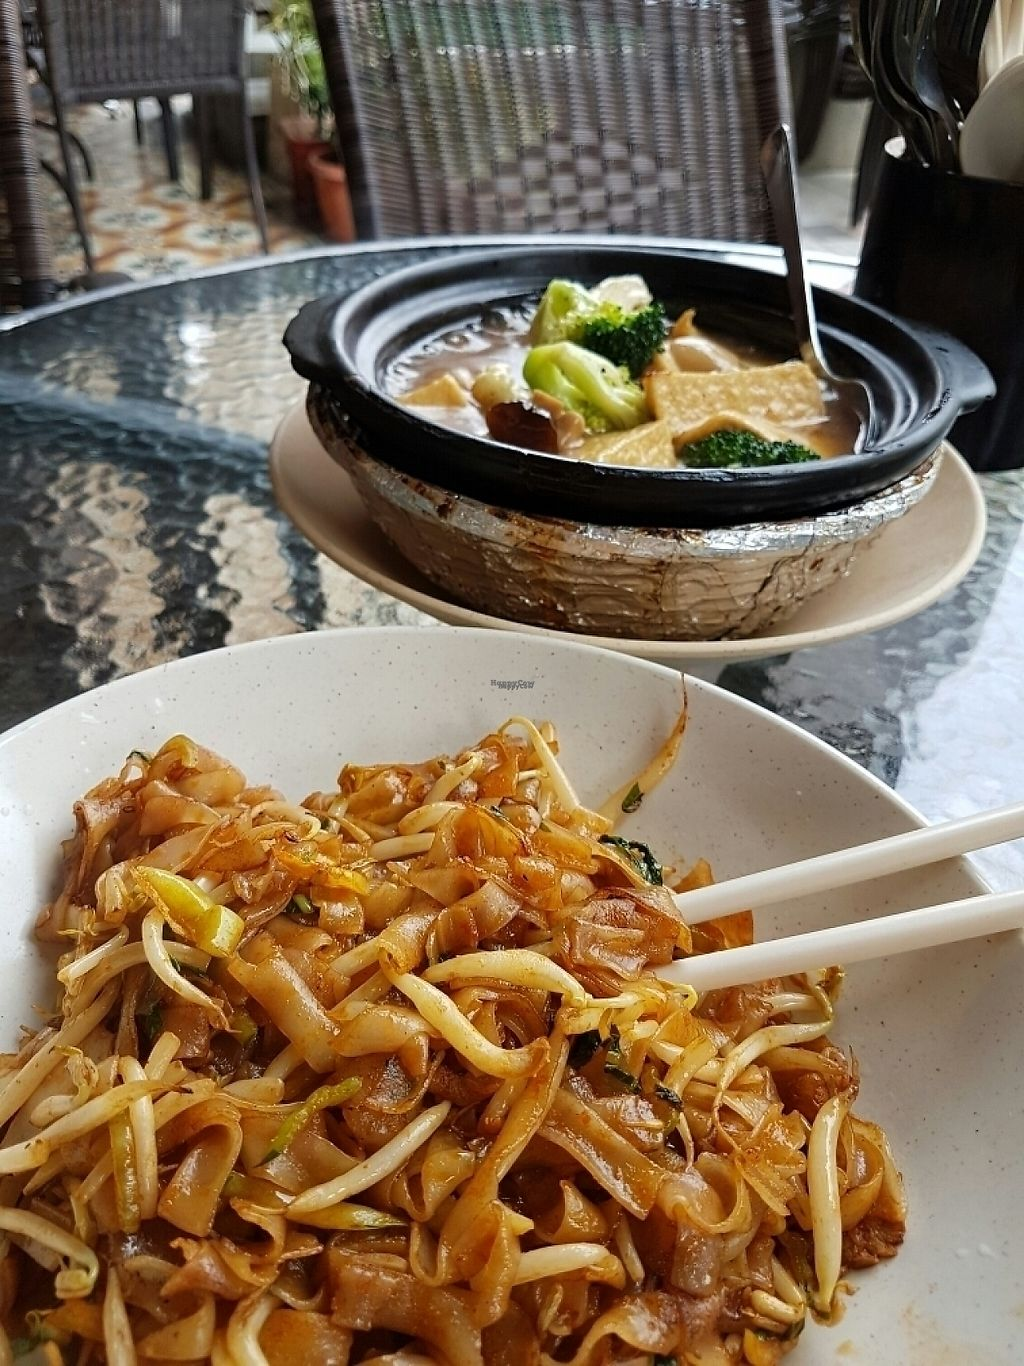 """Photo of Zen Xin Vegetarian  by <a href=""""/members/profile/tantantan"""">tantantan</a> <br/>Noodles and tofu pot! <br/> January 24, 2017  - <a href='/contact/abuse/image/33012/215955'>Report</a>"""